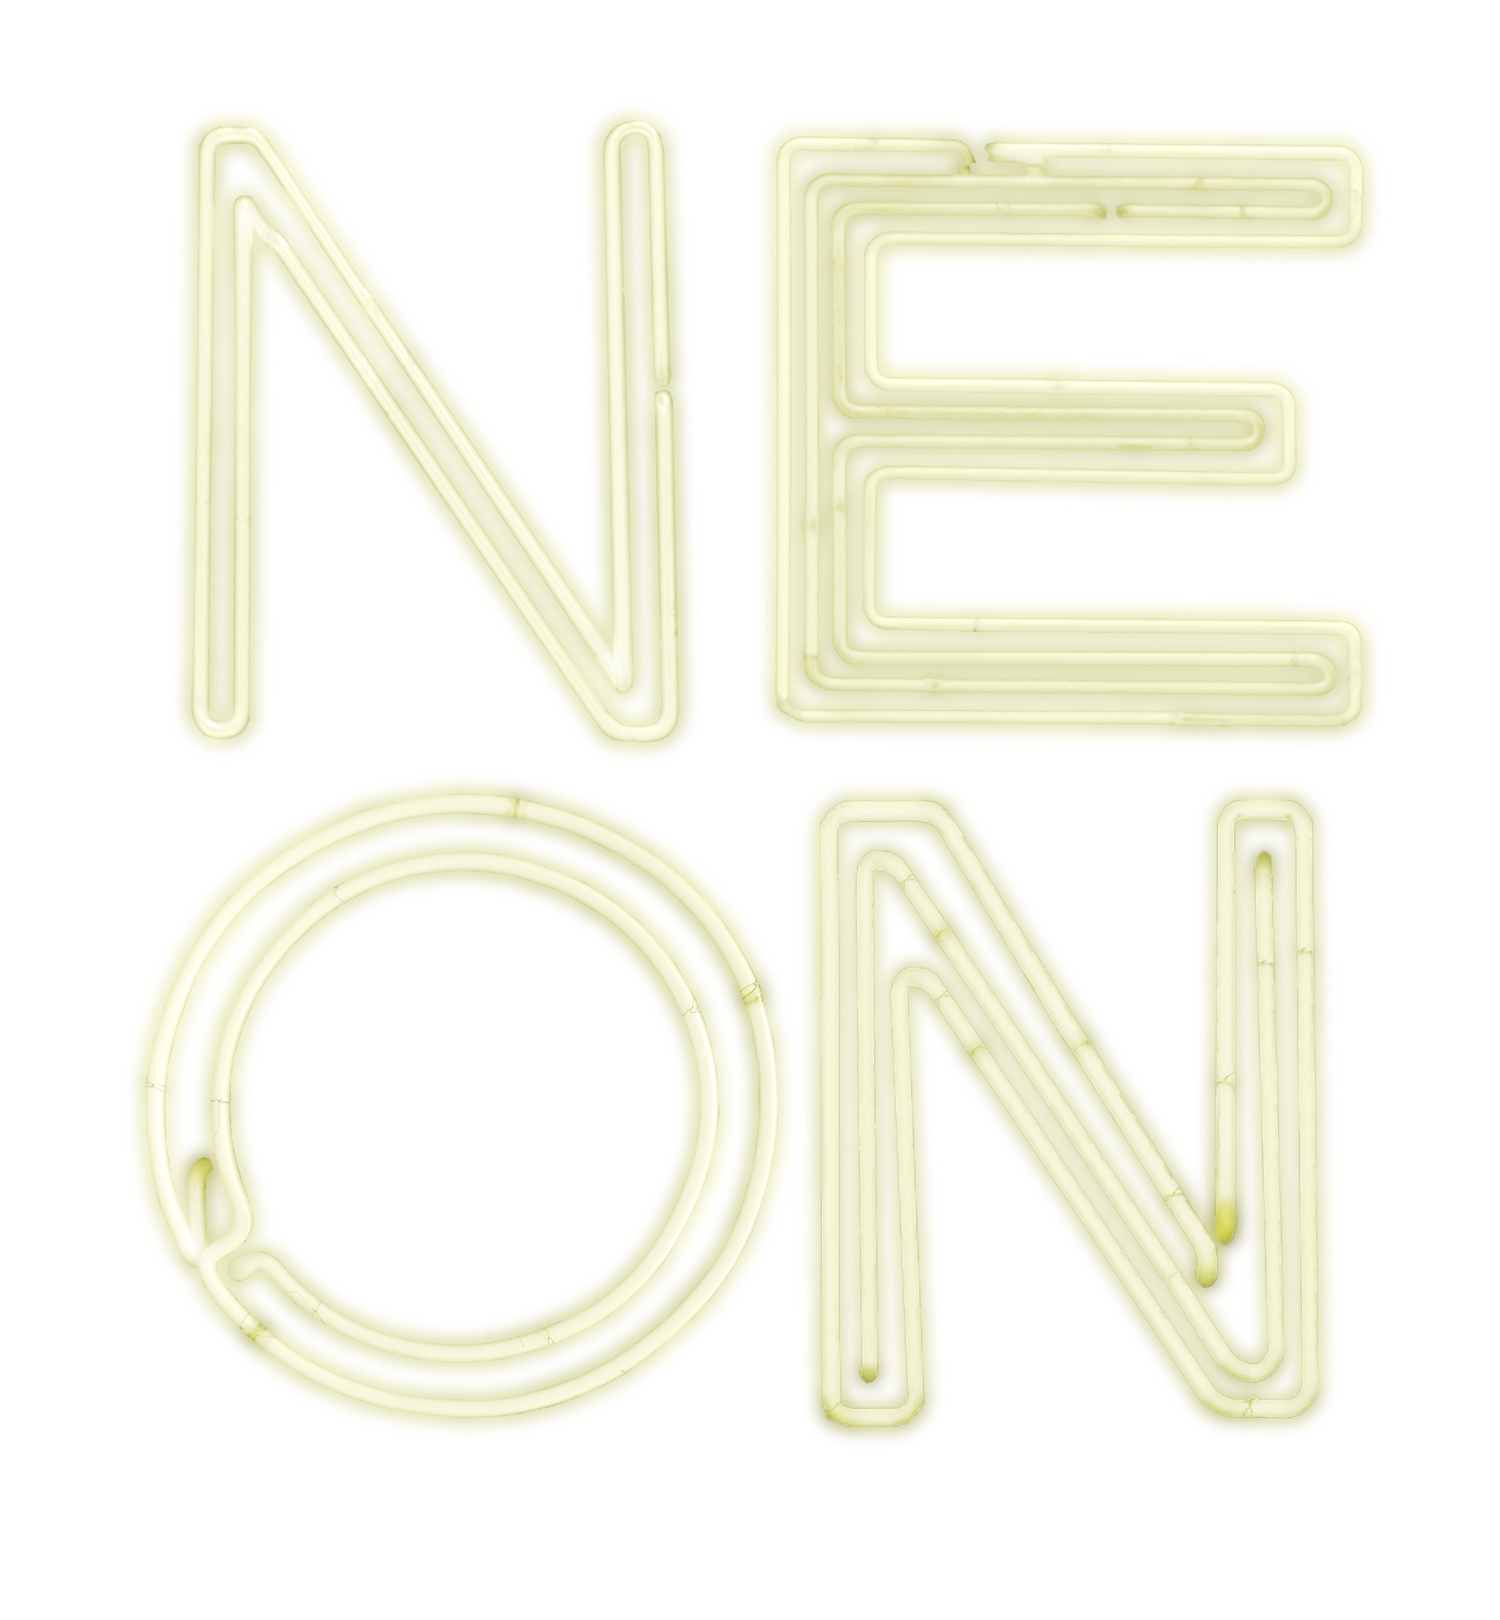 NE ON creative studio